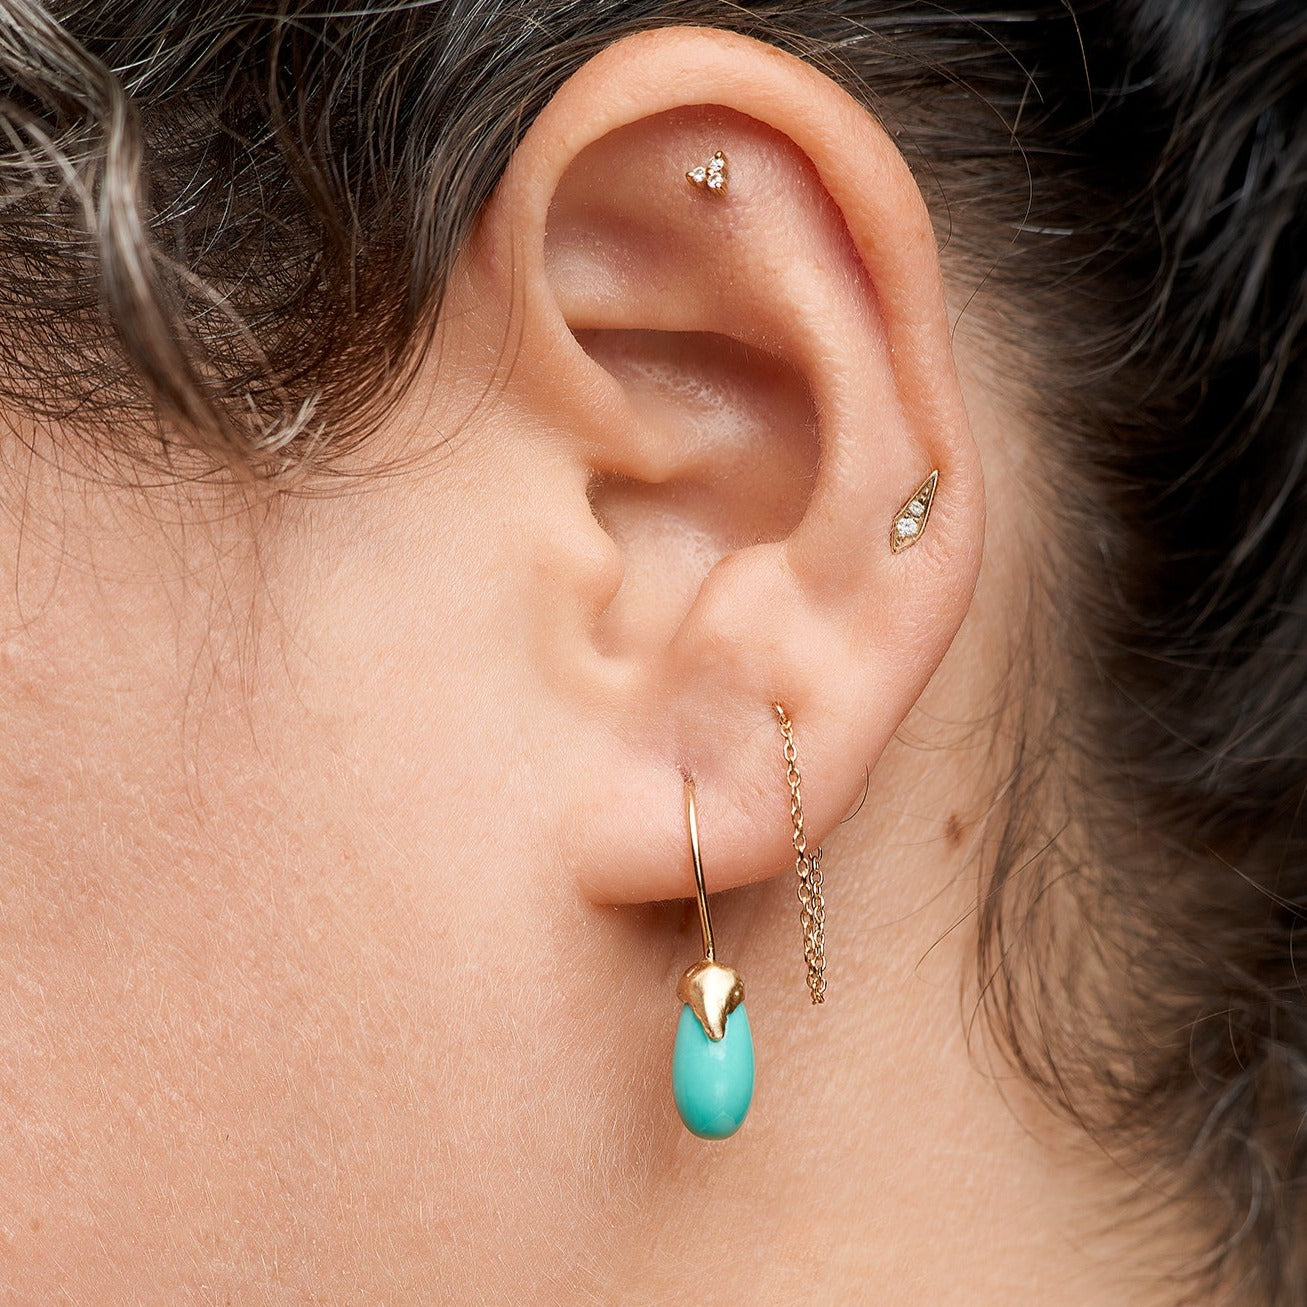 Natural Turquoise and 14kt gold earrings drops with organic handmade texture